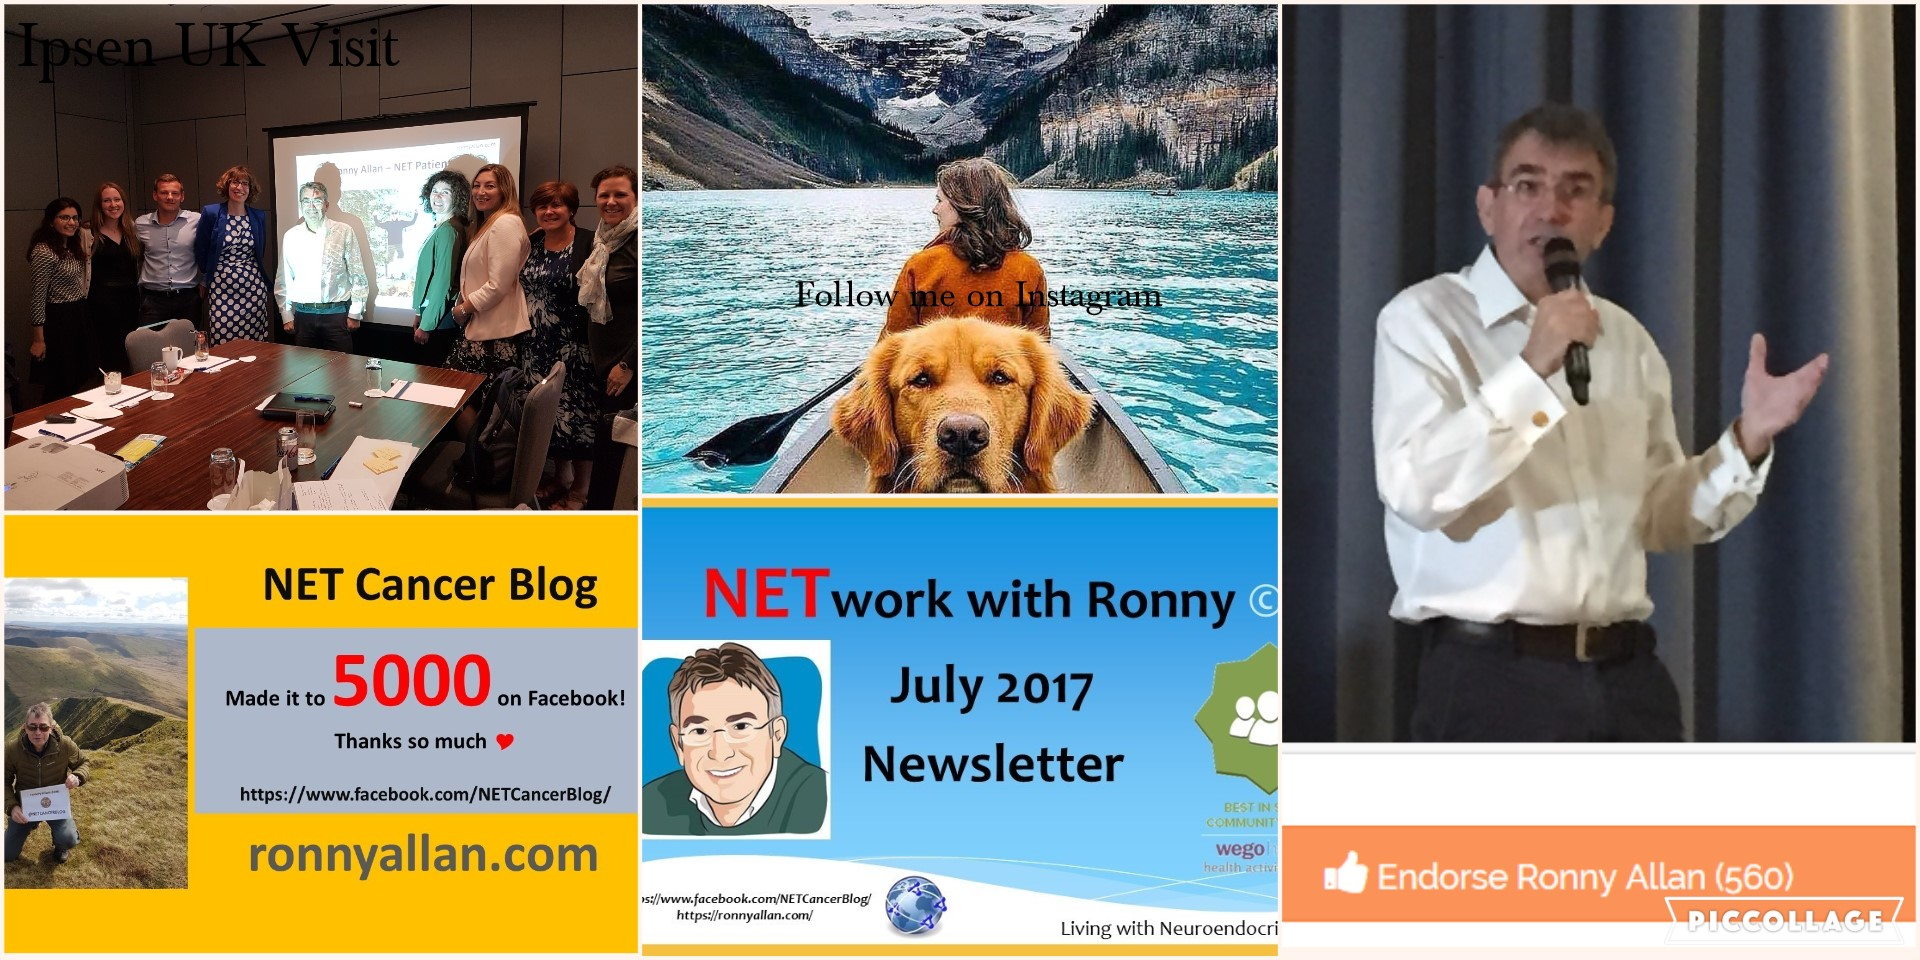 NETwork with Ronny © – Community Newsletter JULY 2017